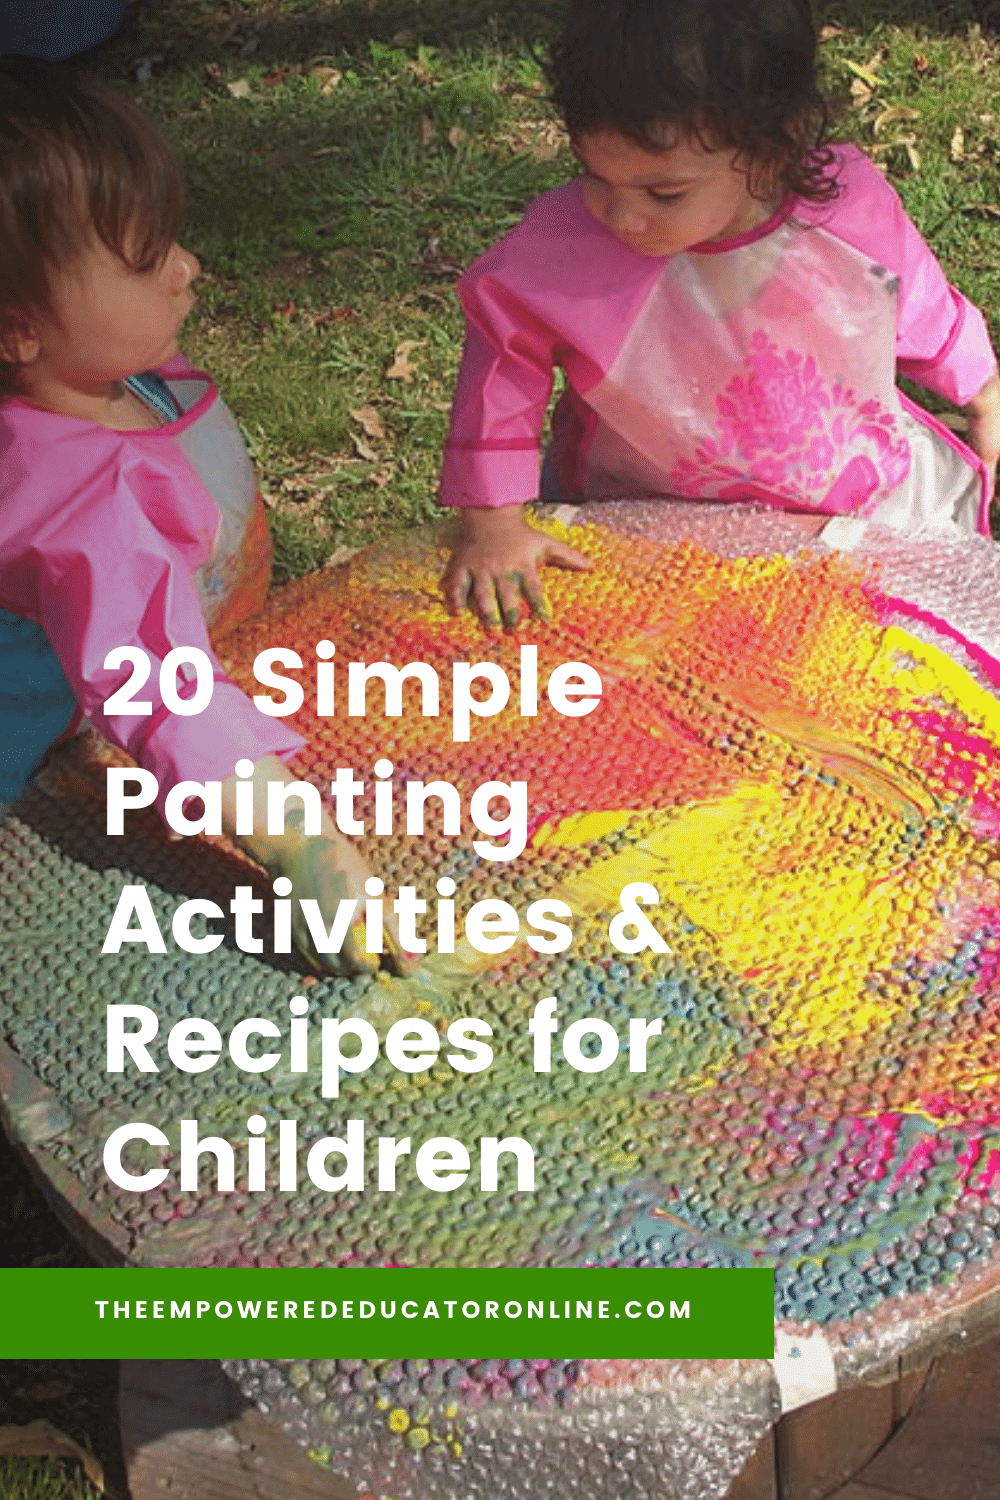 20 Simple Painting Activities for Children